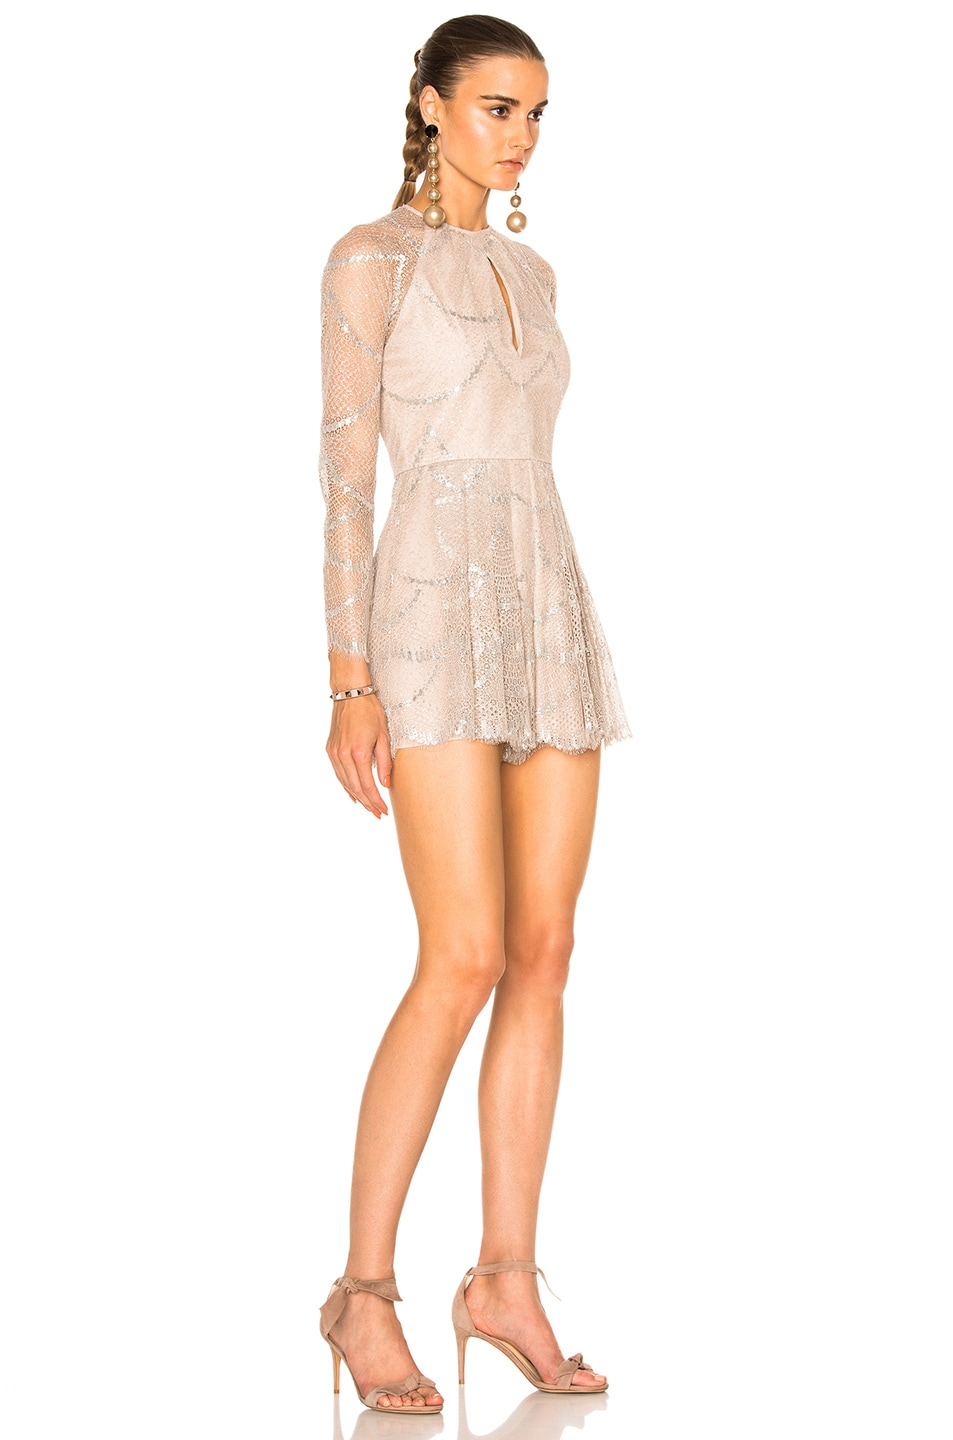 alexis chanelle romper in silver blush | fwrd